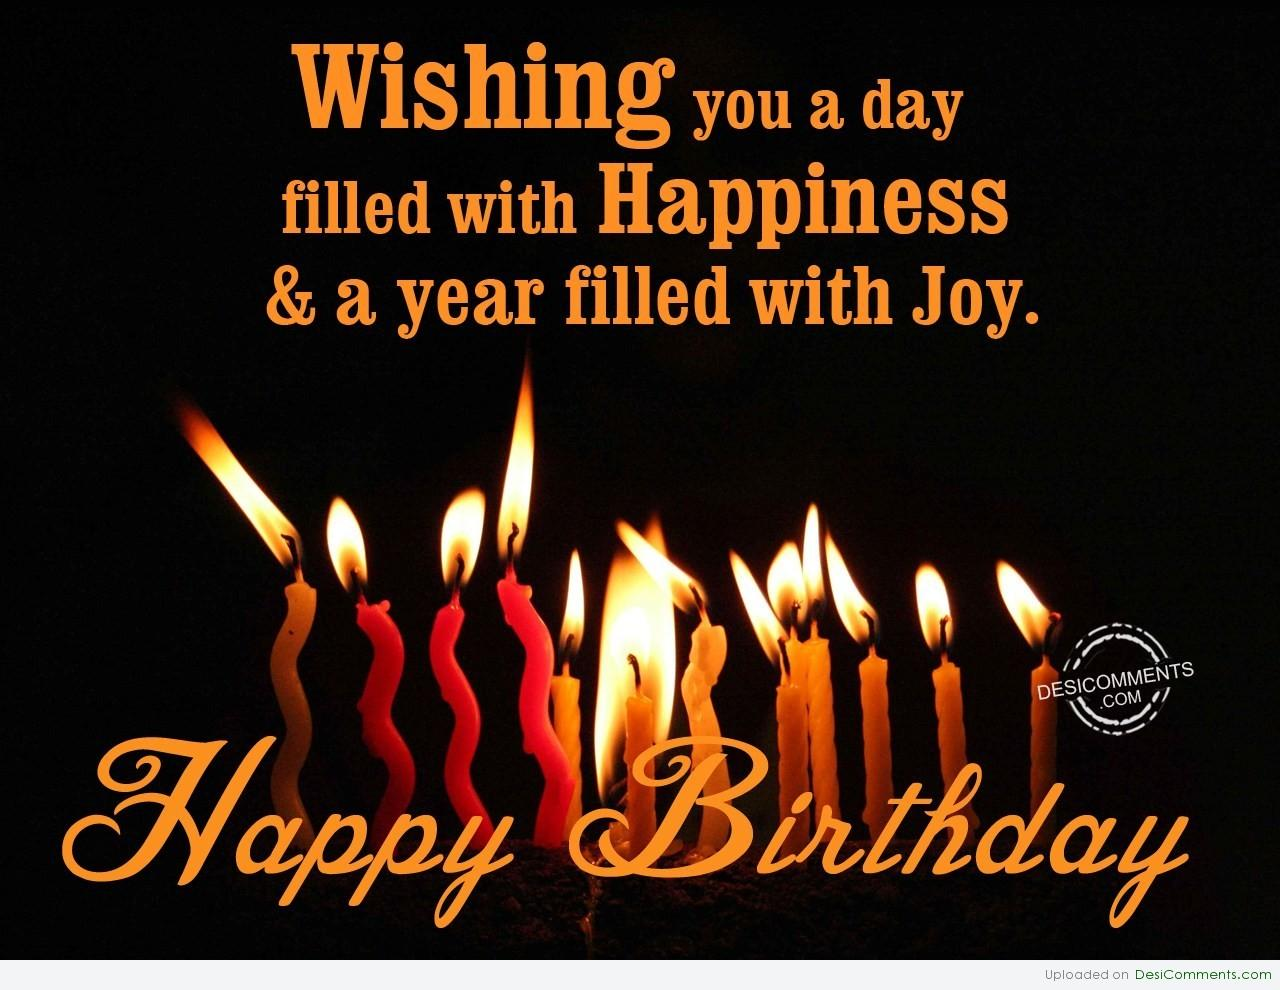 Wishing You A Very Happy Birthday Desicomments Com